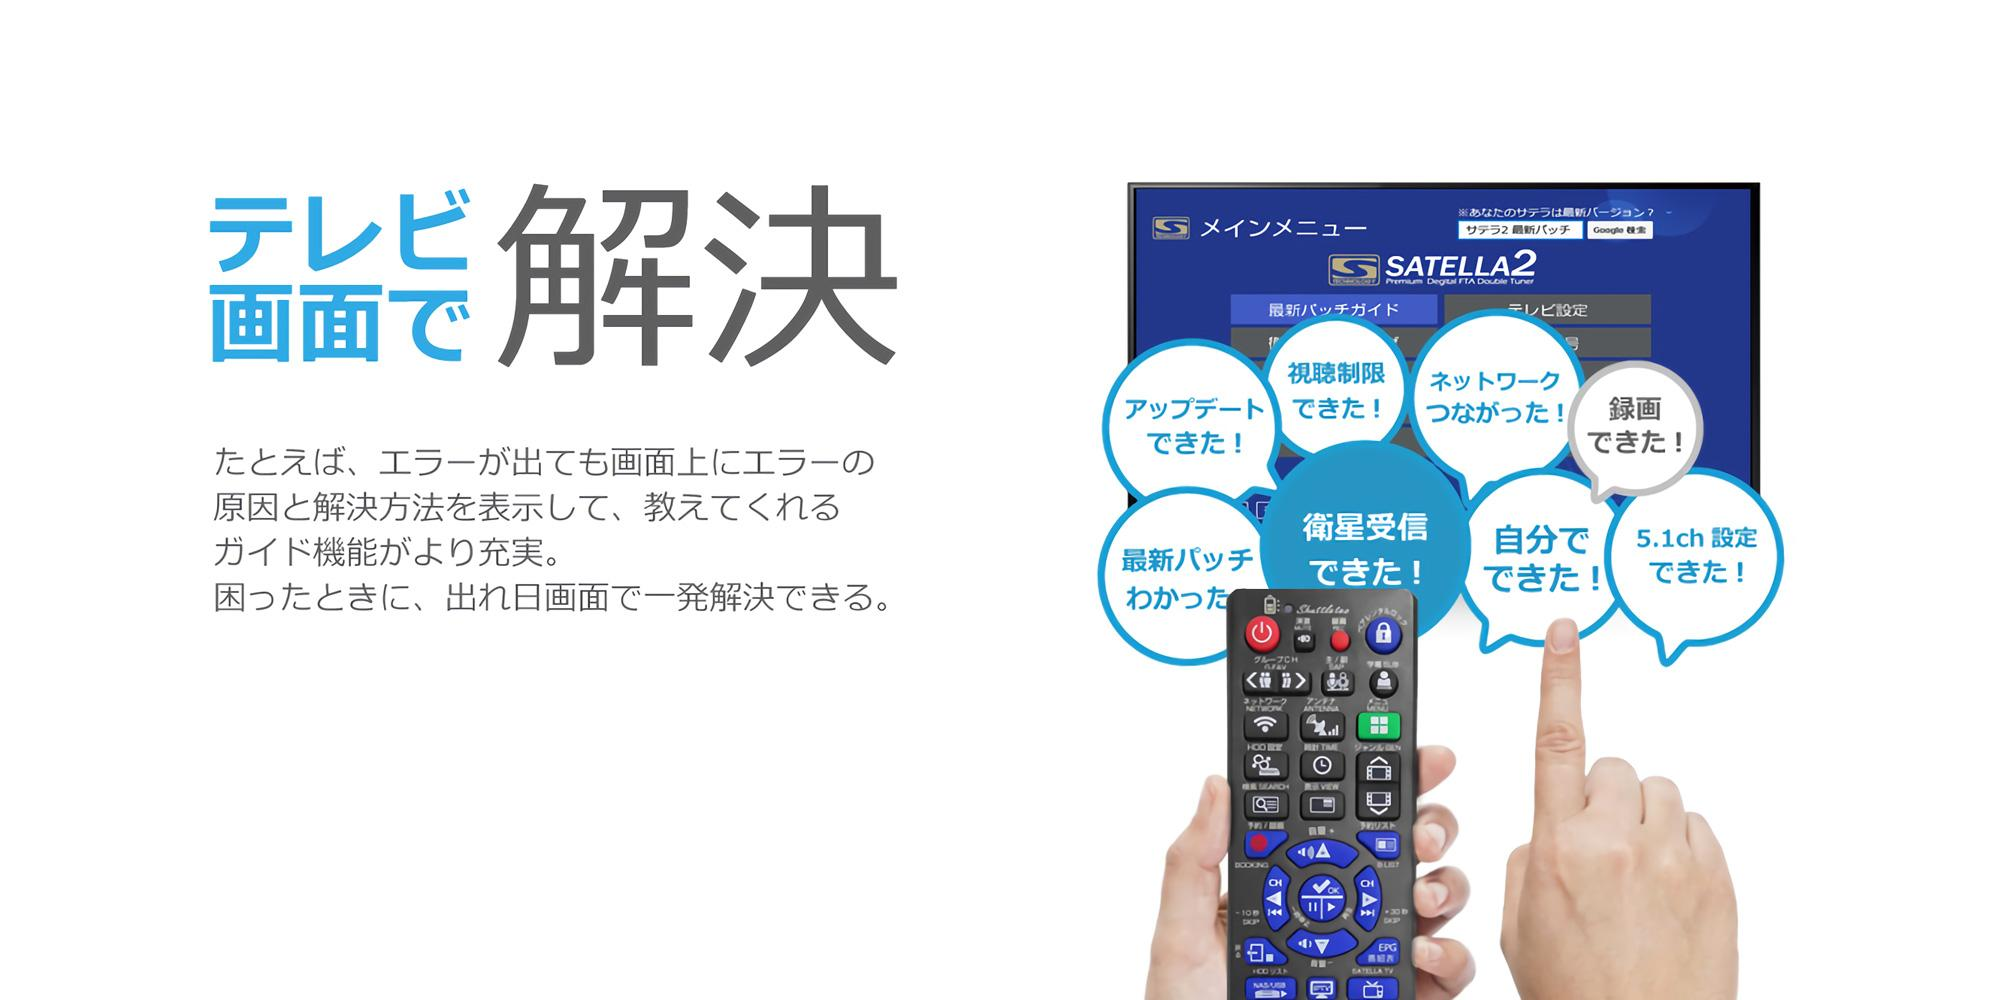 SATELLA2 remote controller